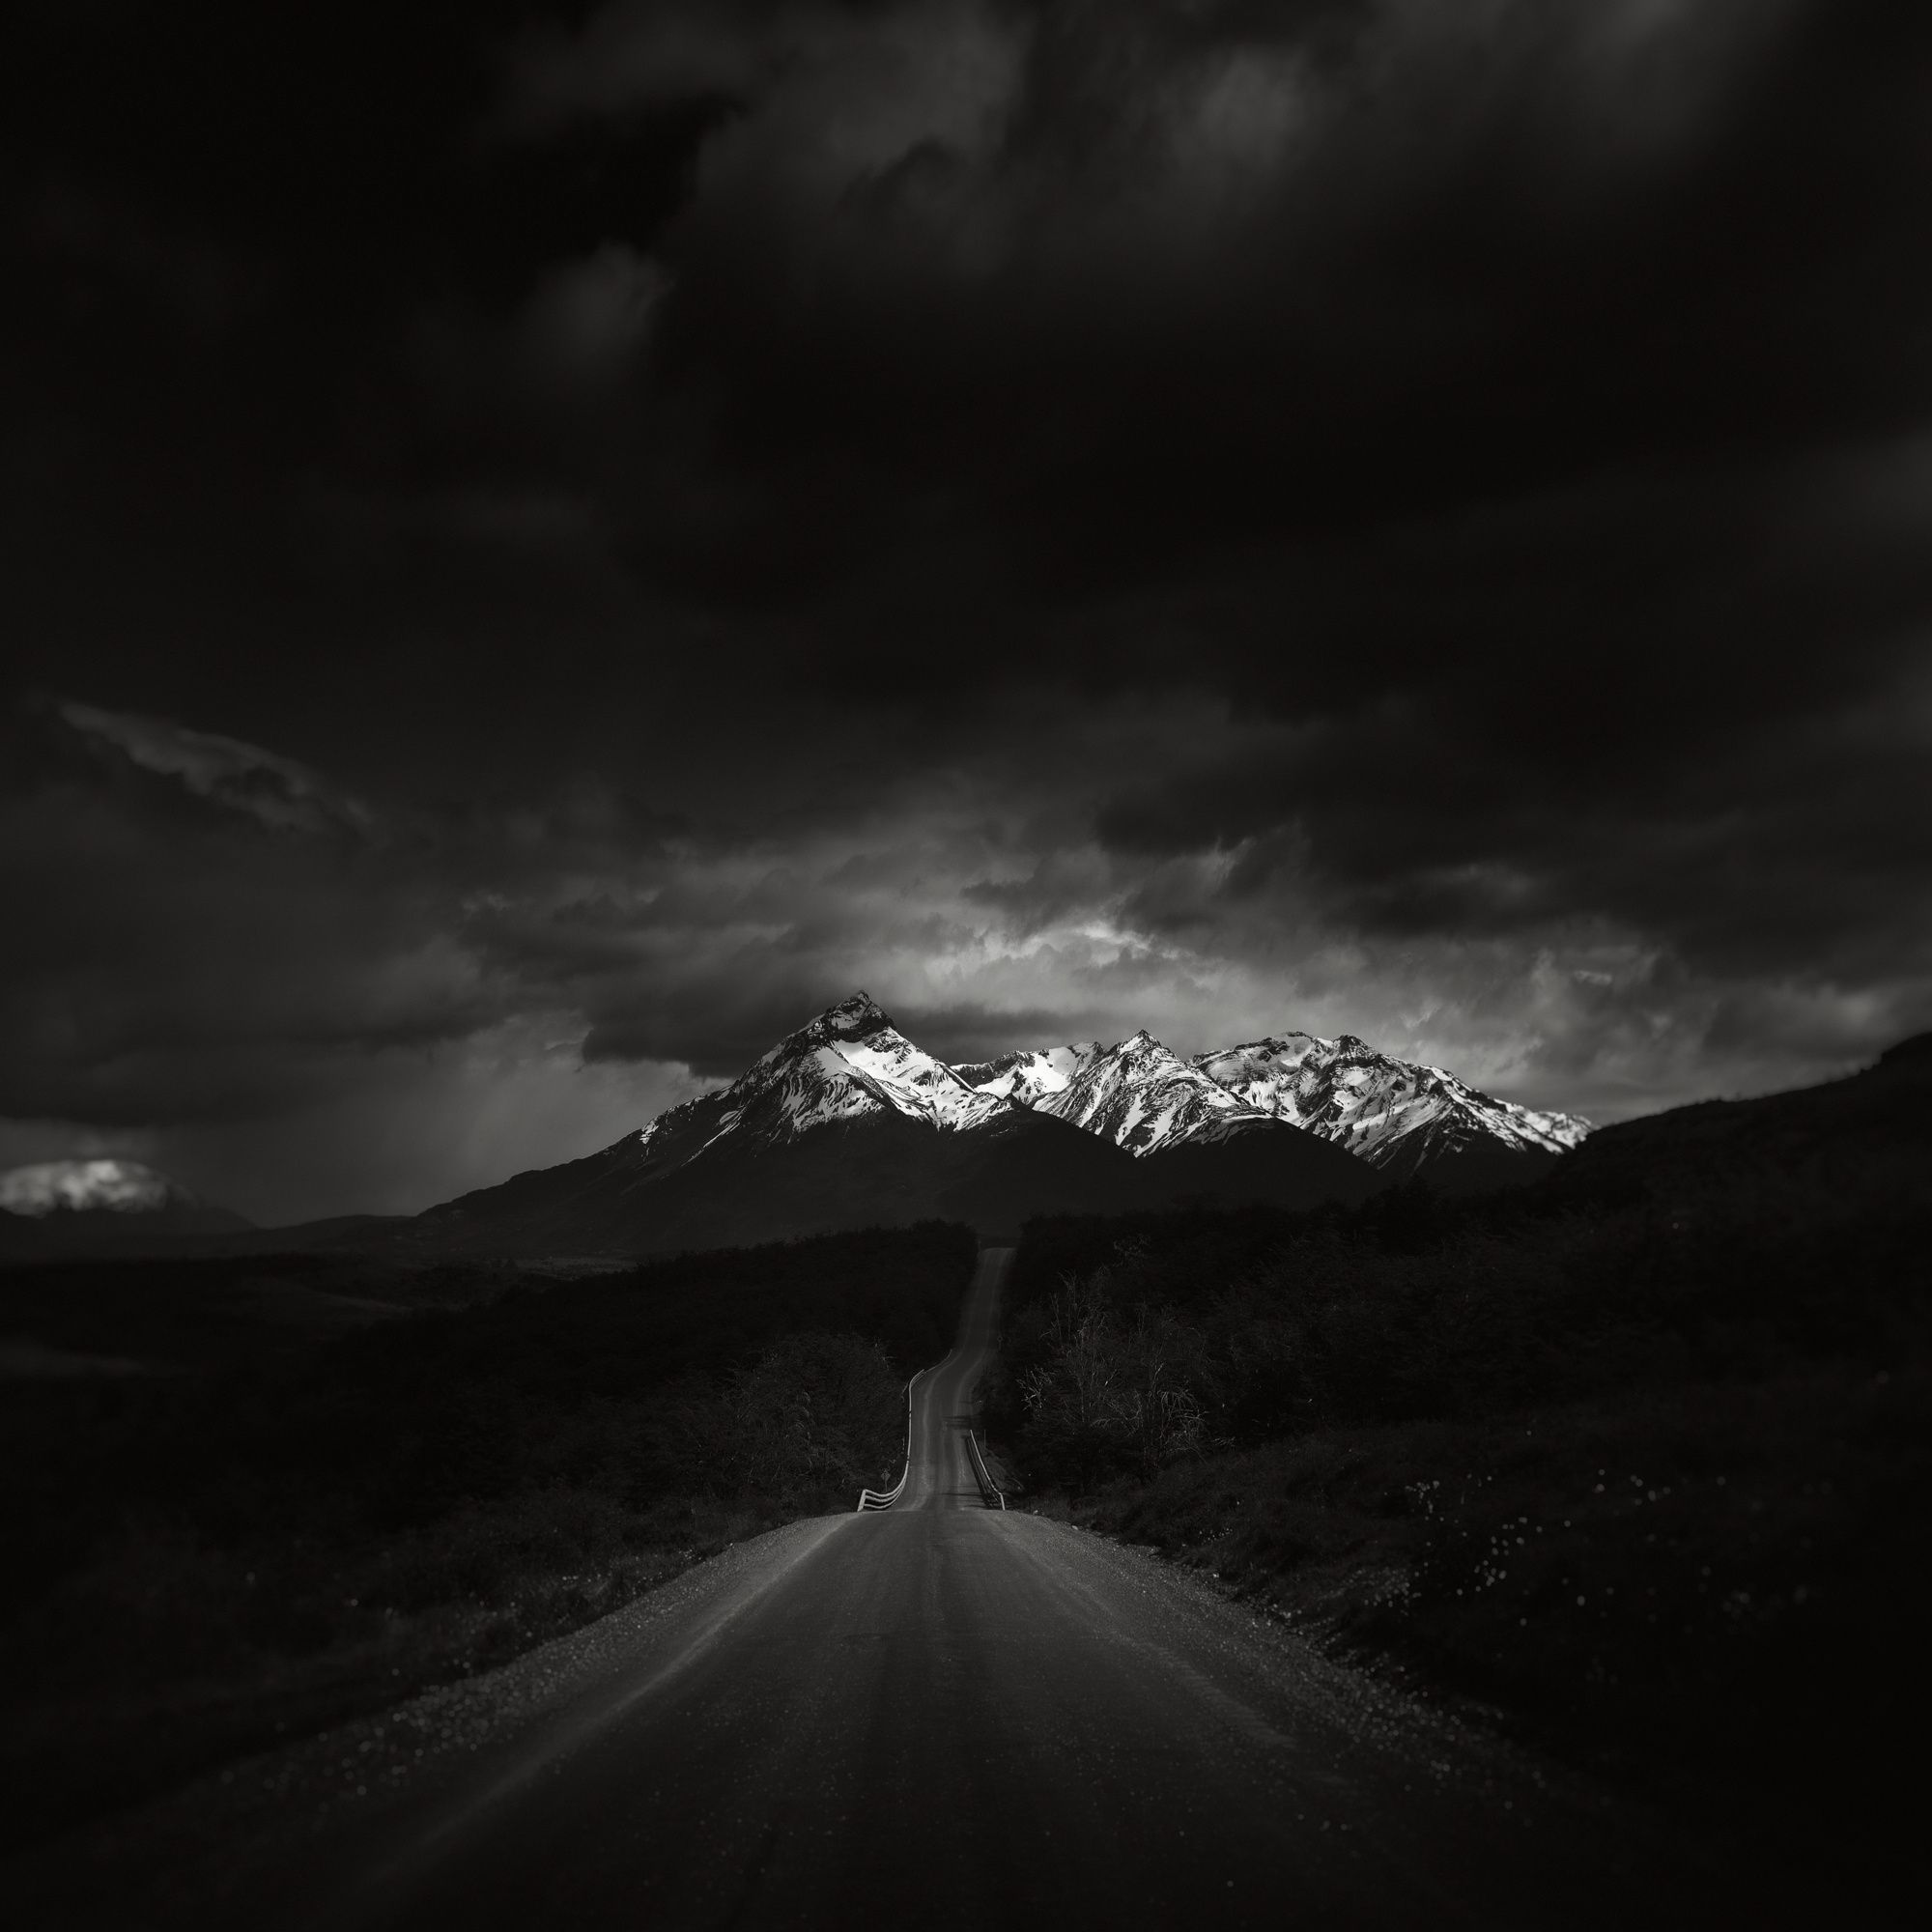 new product 7e7ad bbc81 road trip by Andy Lee - Photo 177310887 / 500px. #500px ...